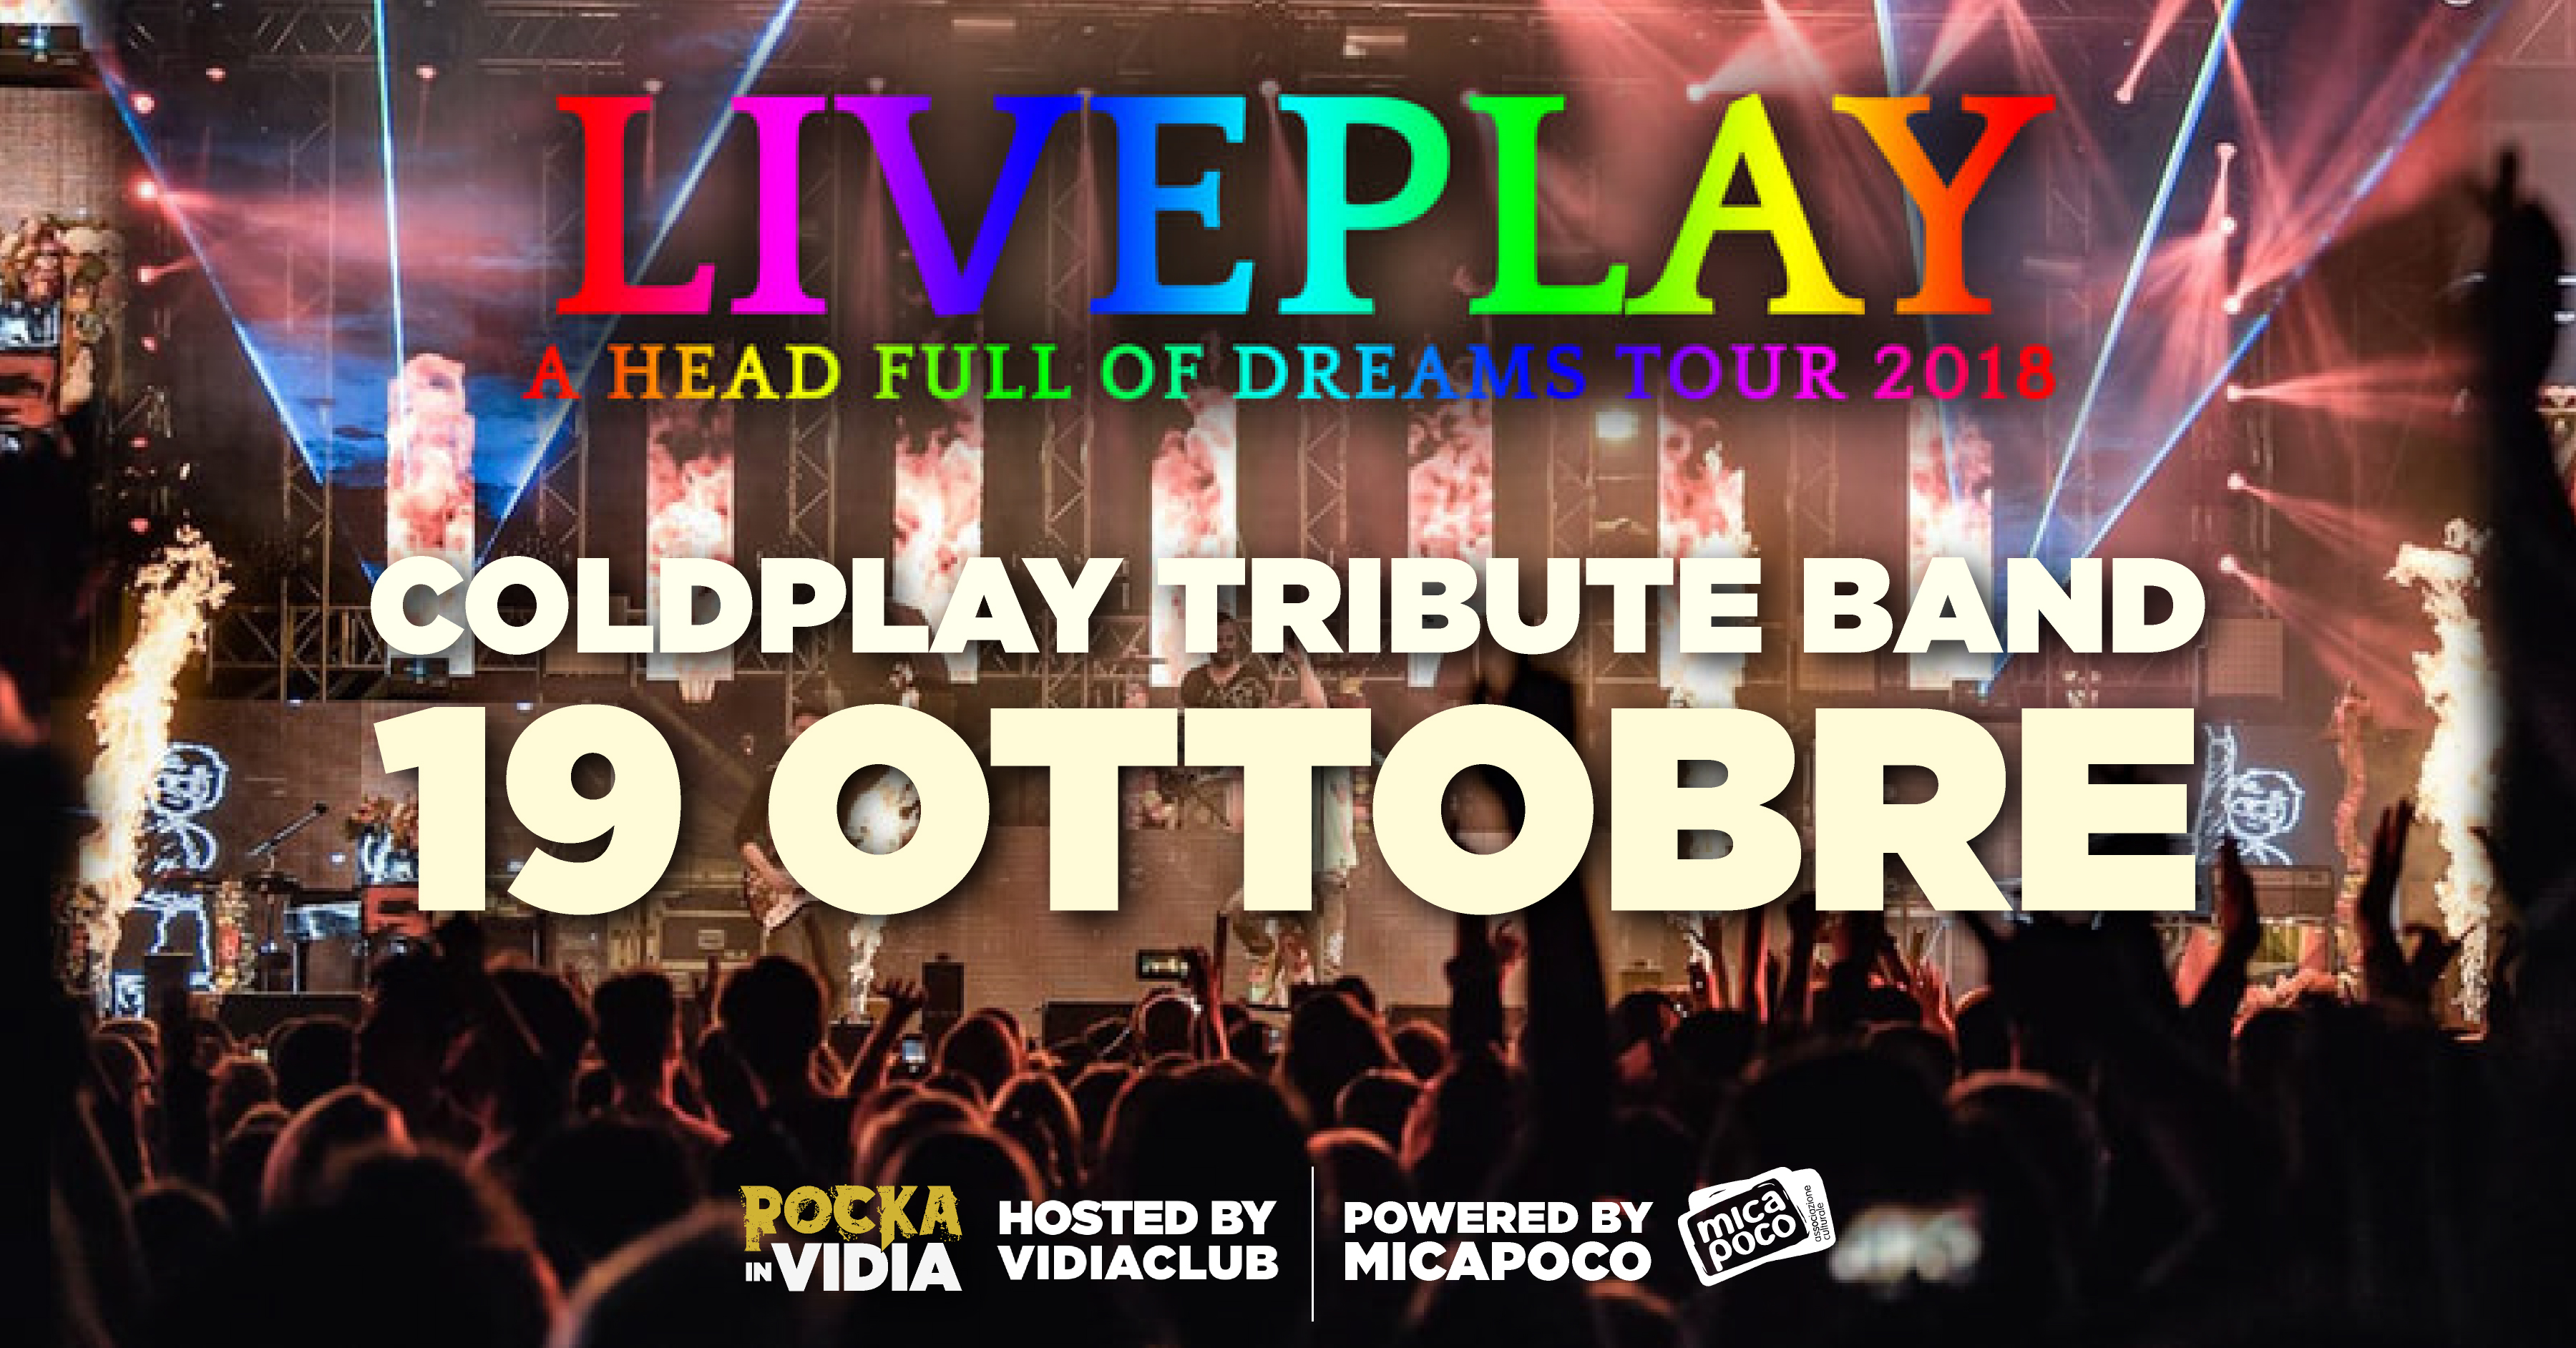 LivePlay tributo ai Coldplay 2018